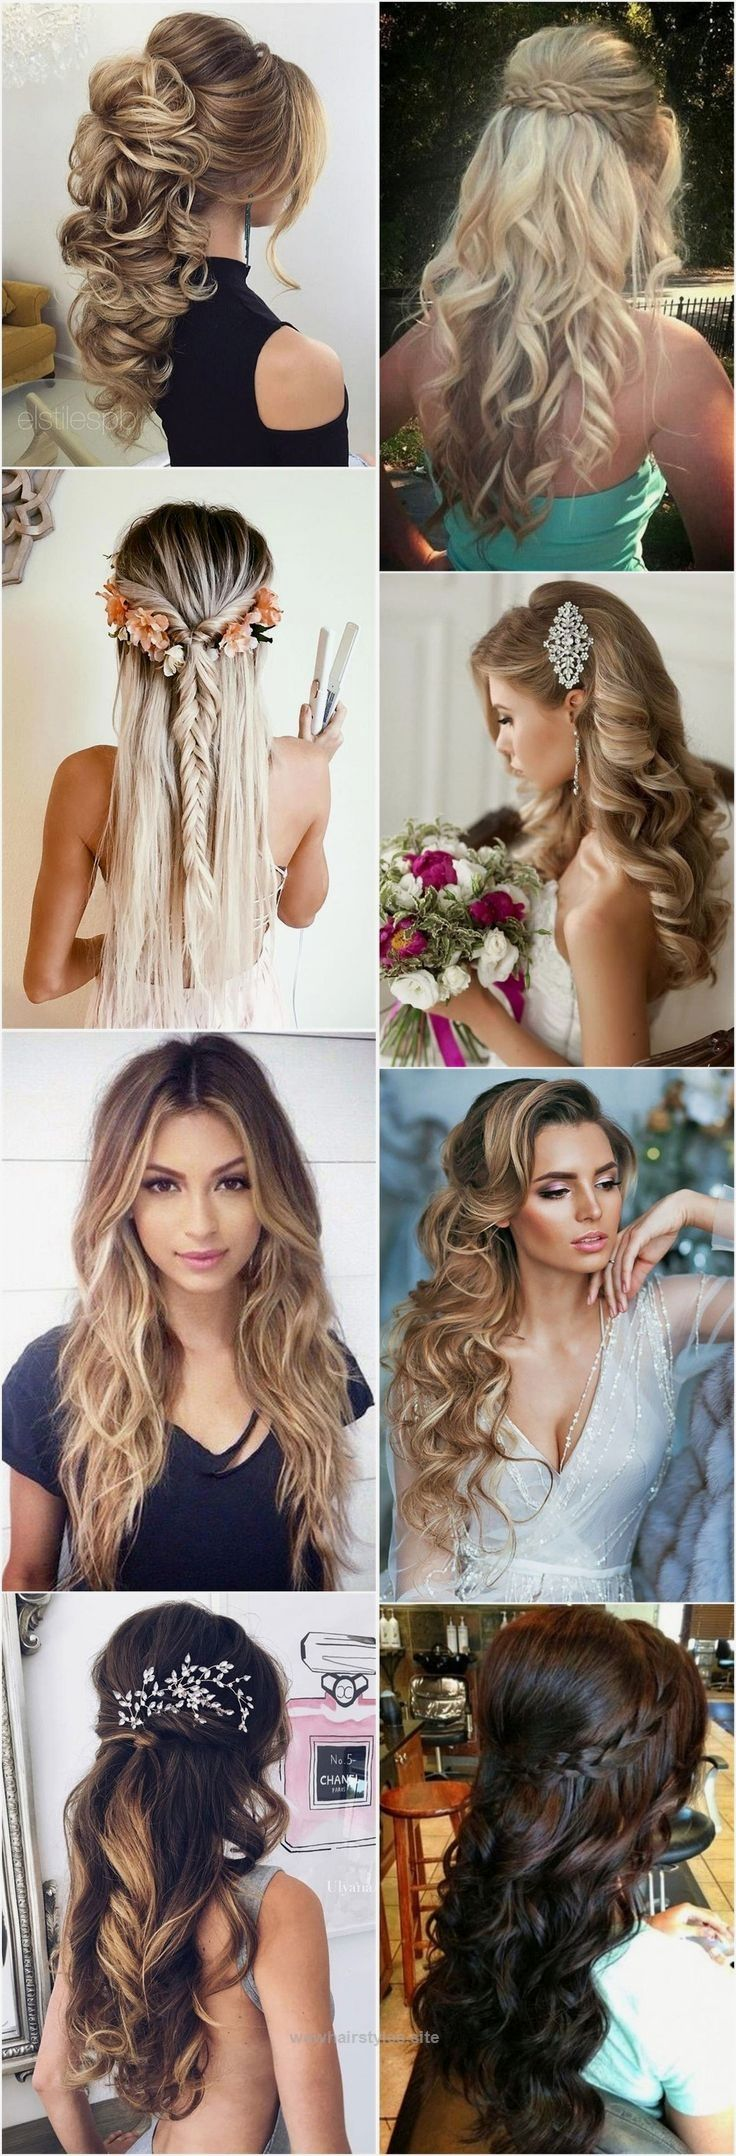 18 Creative And Unique Wedding Hairstyles For Long Hair: Best 25+ Unique Hairstyles Ideas On Pinterest